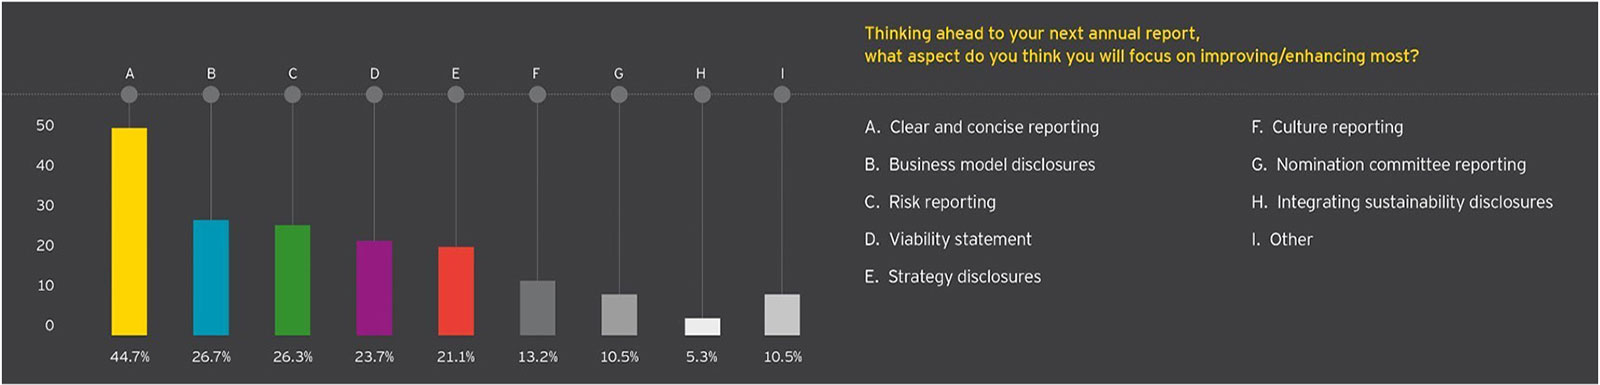 EY - ar2015 poll results - thinking ahead improving